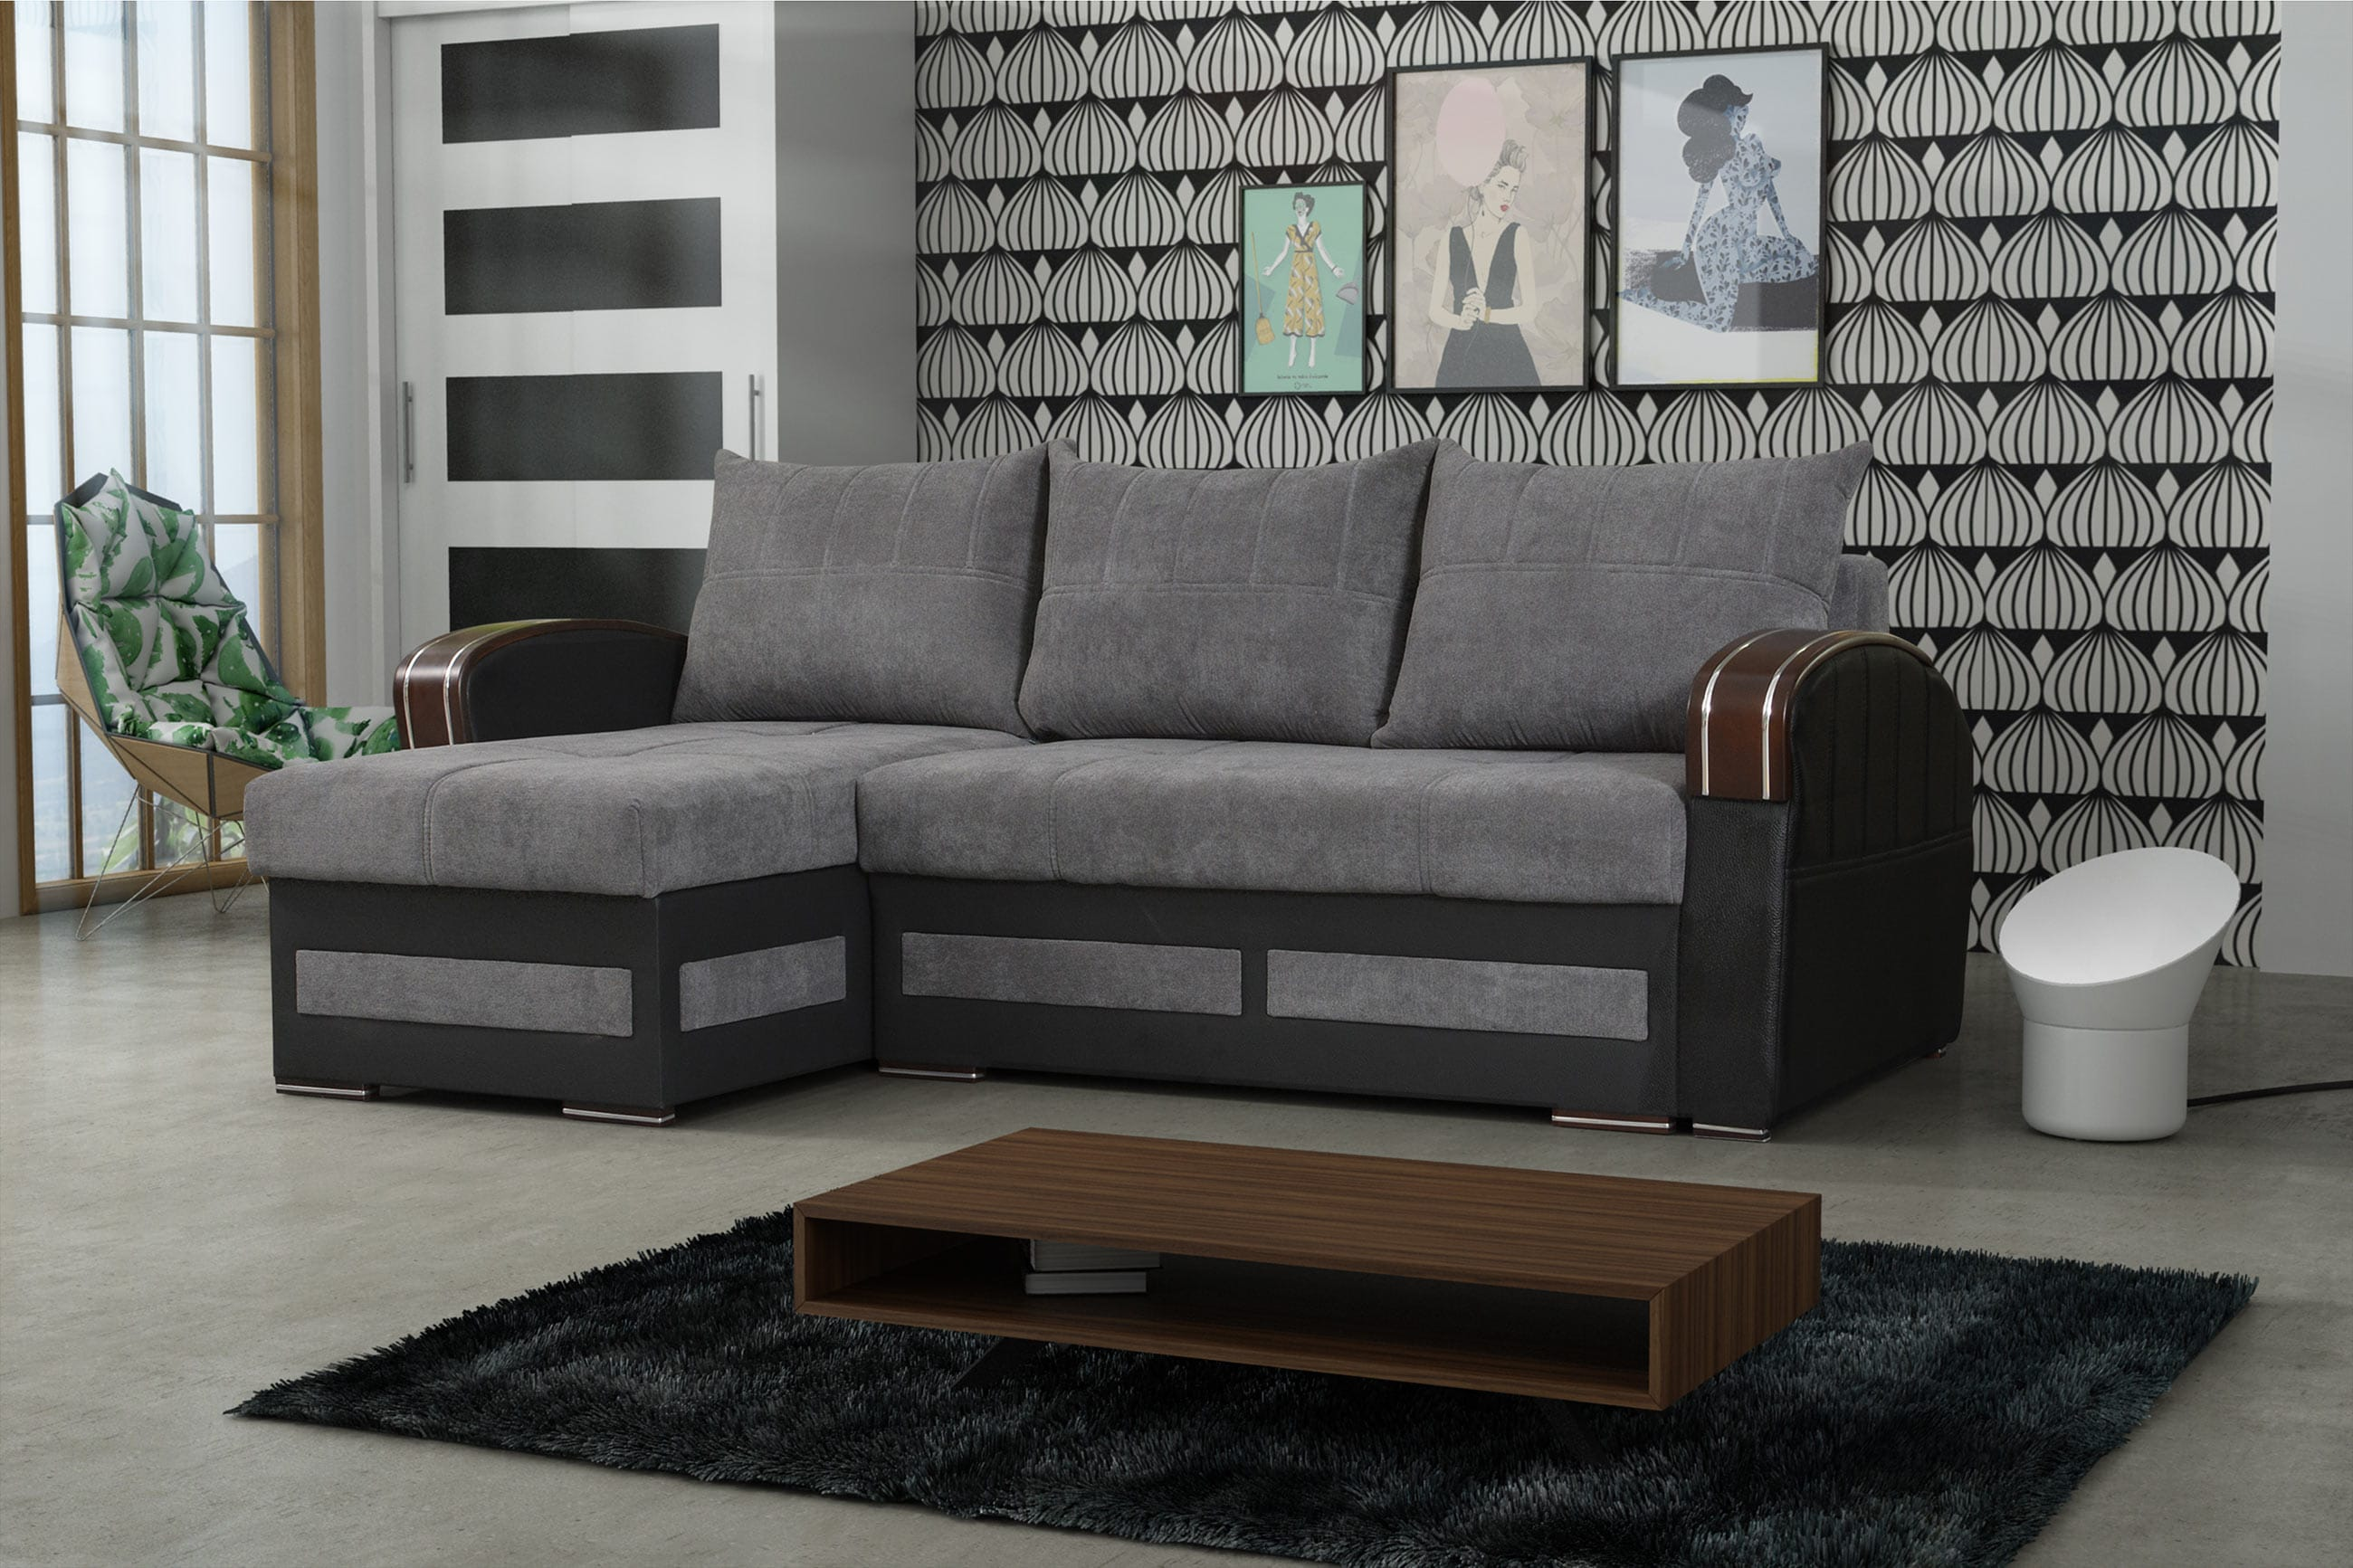 Tommy Gray Sectional Sofa Sleeper By